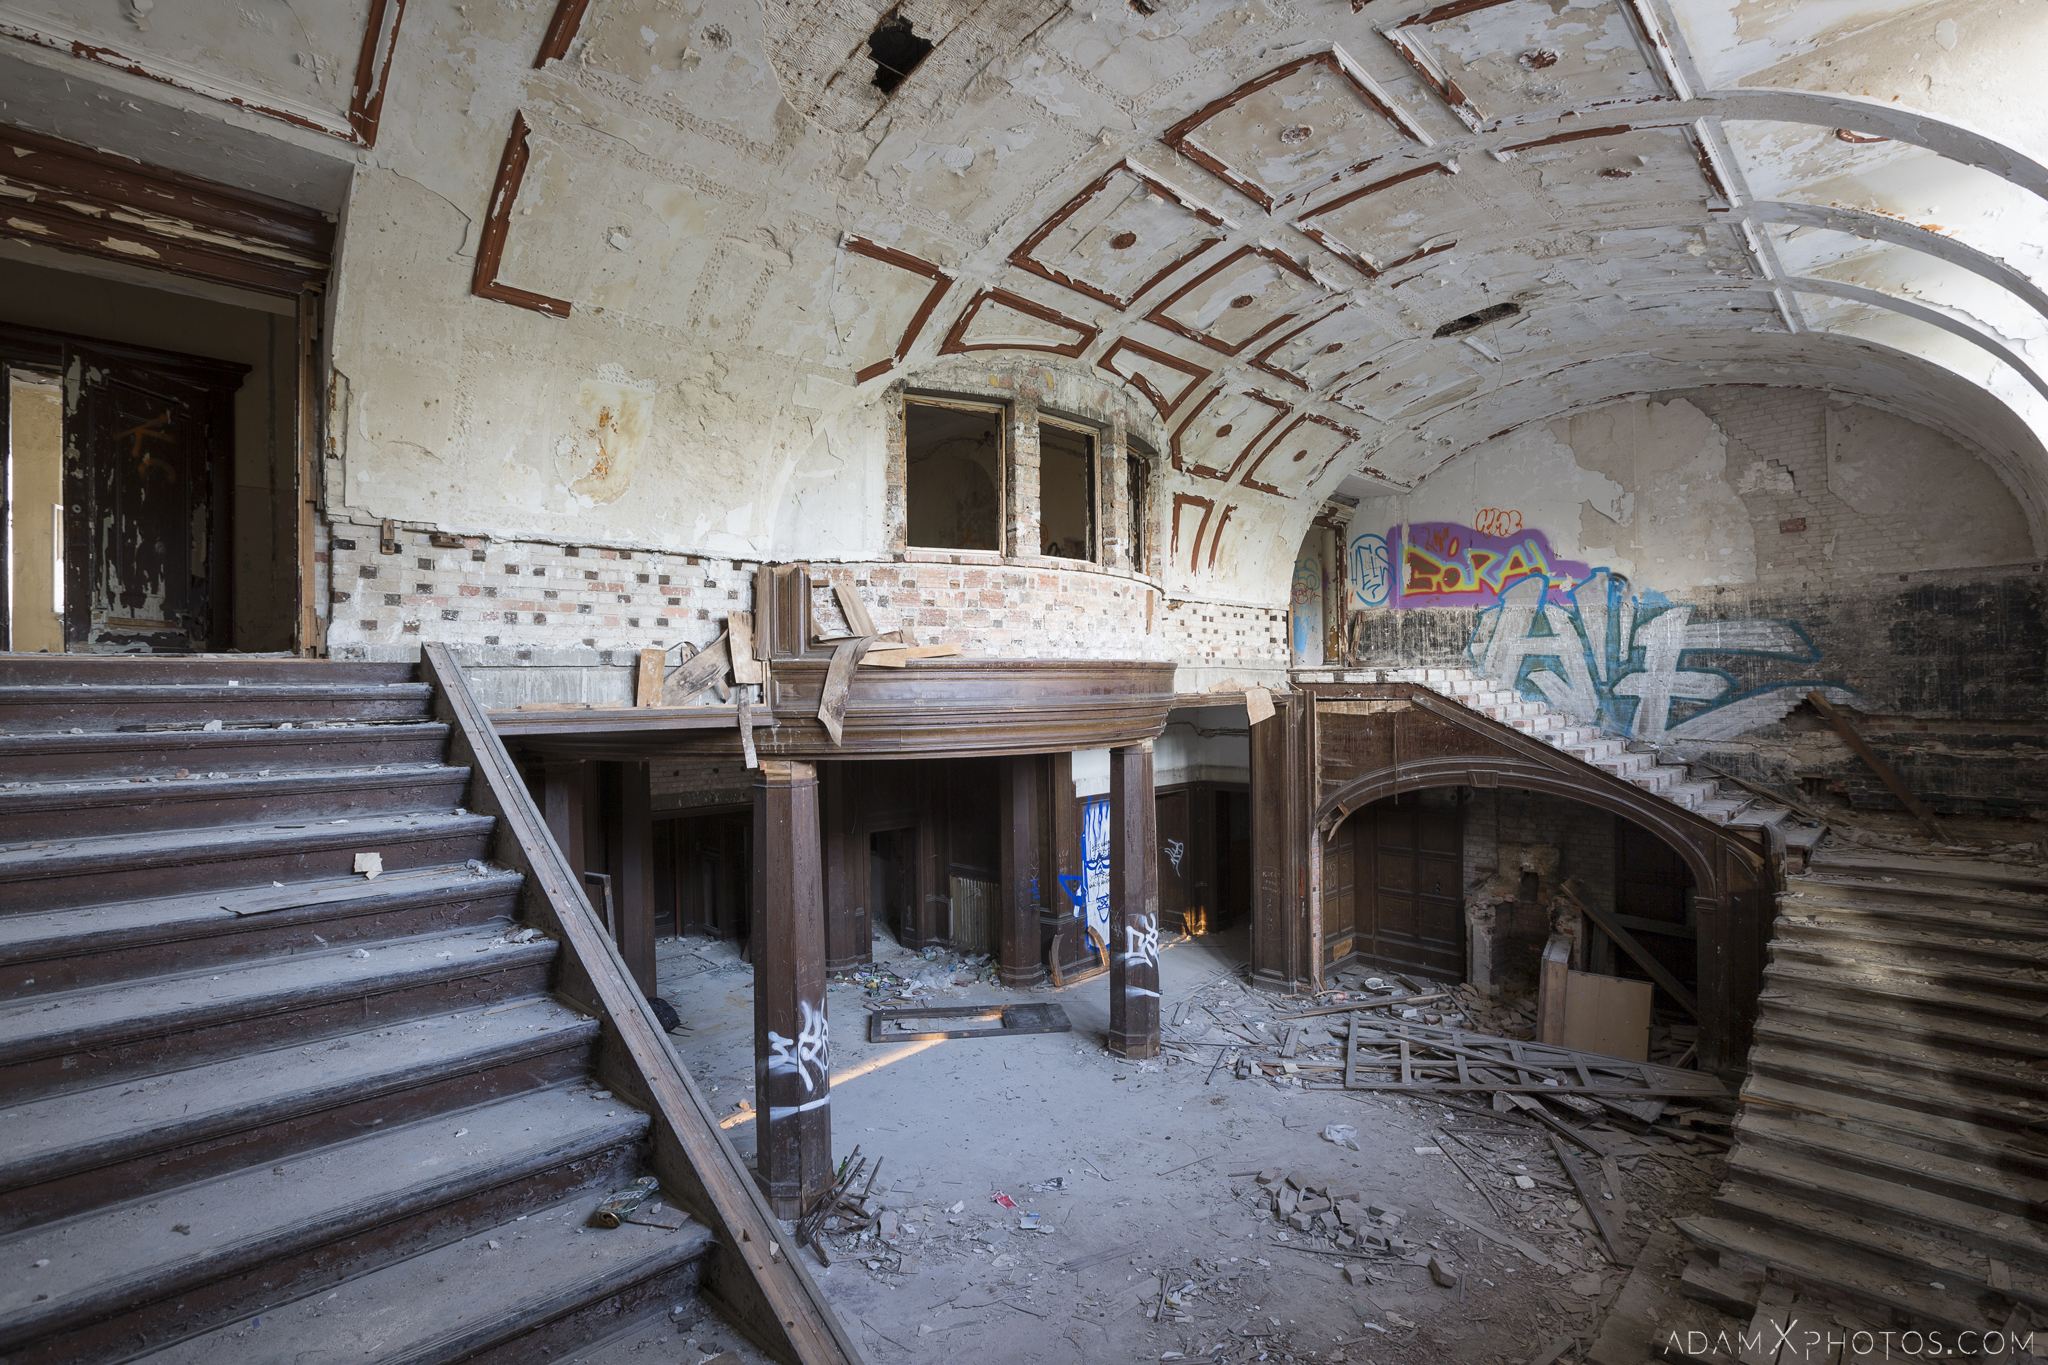 Main hall twin split stairs staircase Great Belcz Palace Pałac w Bełczu Wielkim Urbex Poland Adam X Urban Exploration Access 2016 Abandoned decay lost forgotten derelict location haunting eerie